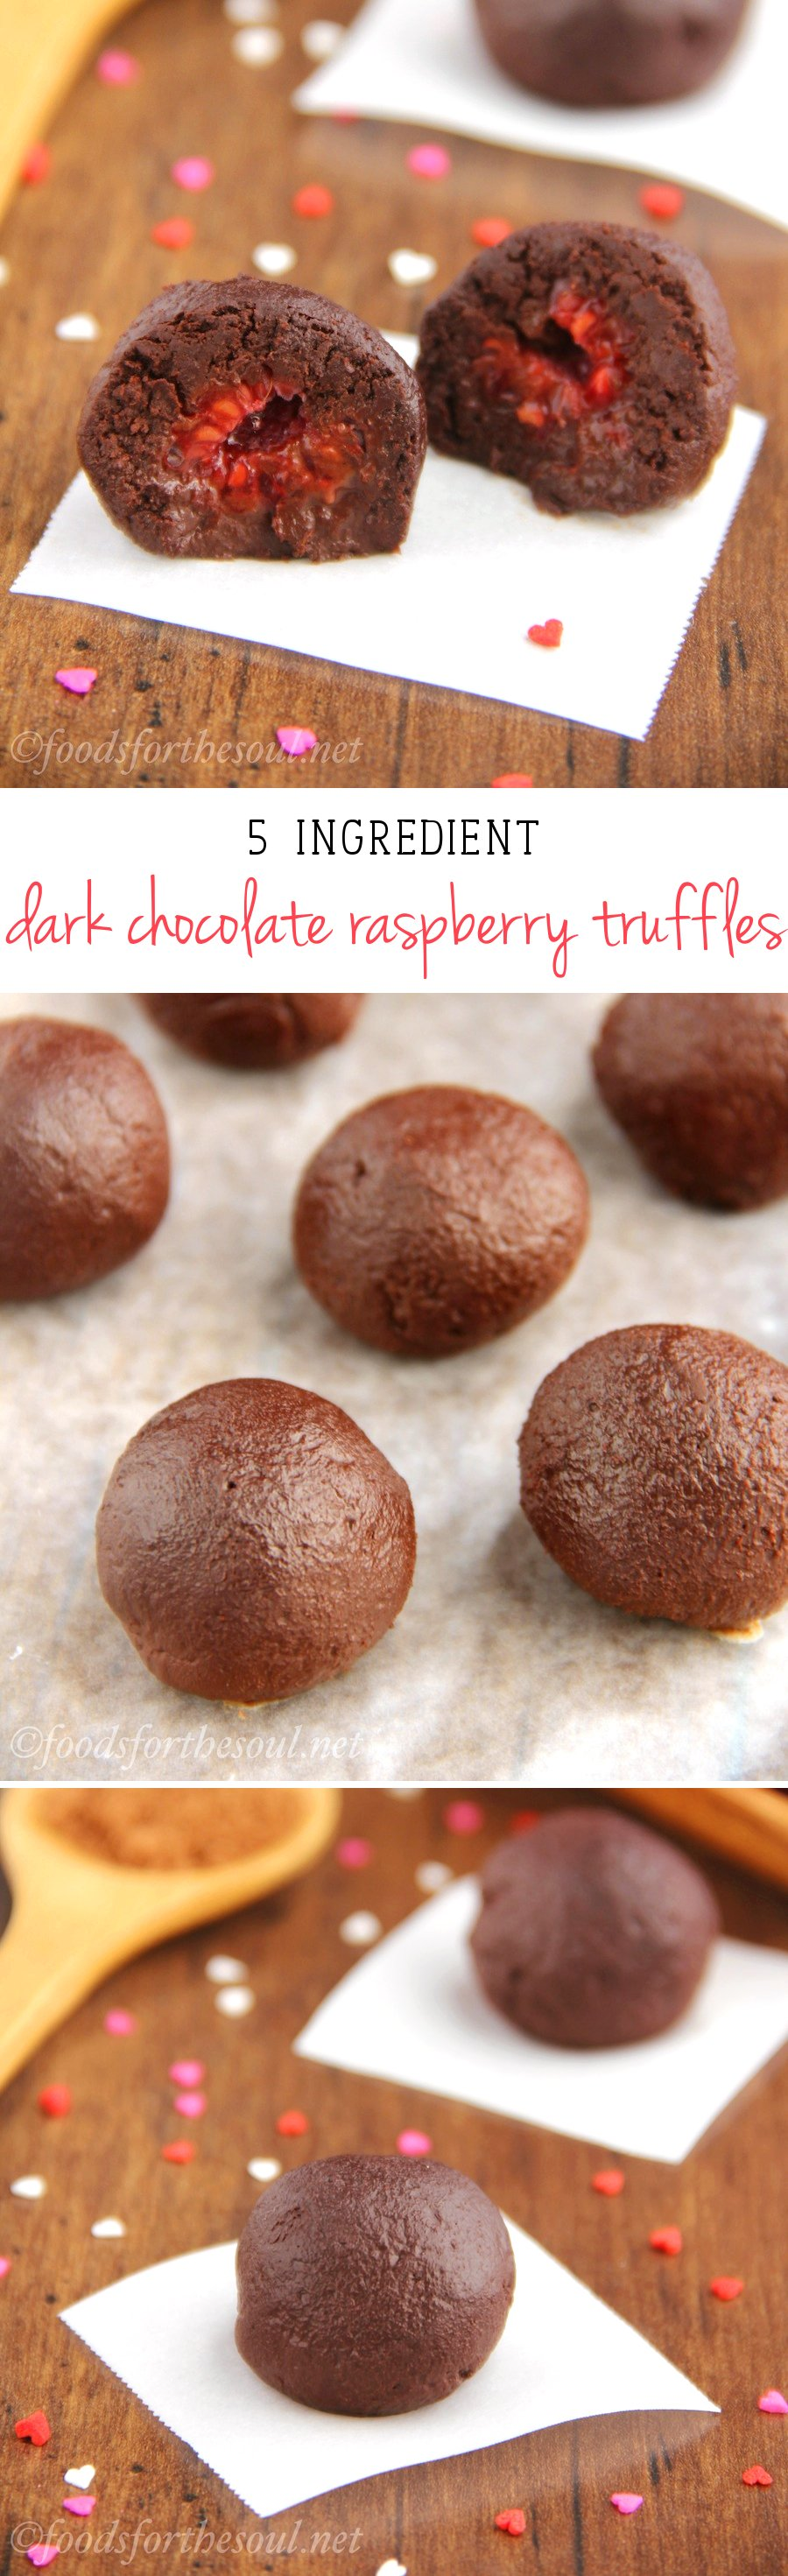 Dark Chocolate Raspberry Truffles -- only 5 ingredients & 28 calories each! An easy skinny, clean-eating treat. They don't taste healthy at all!